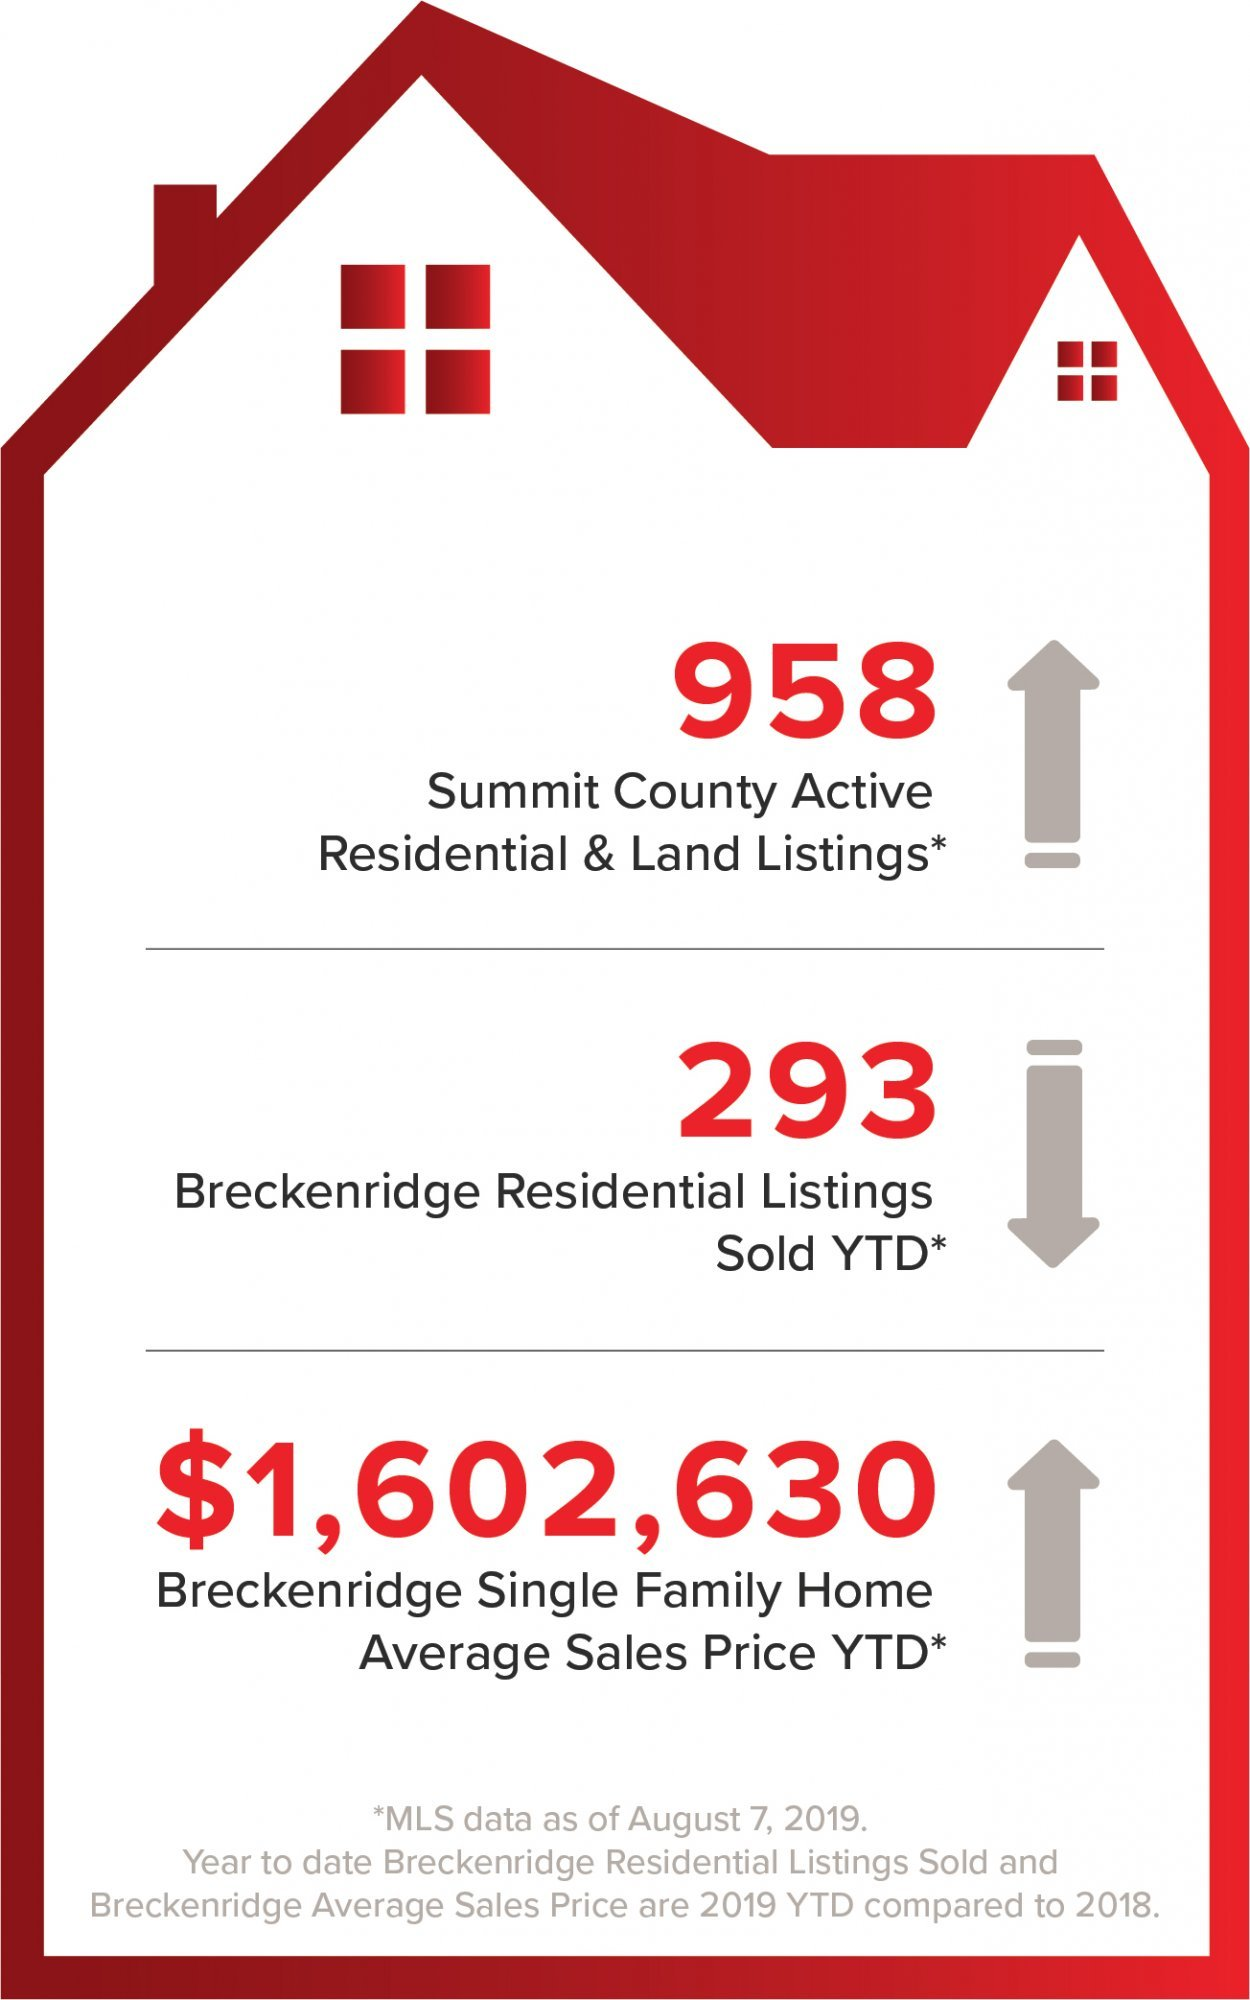 Breckenridge and Summit County Real Estate Statistics